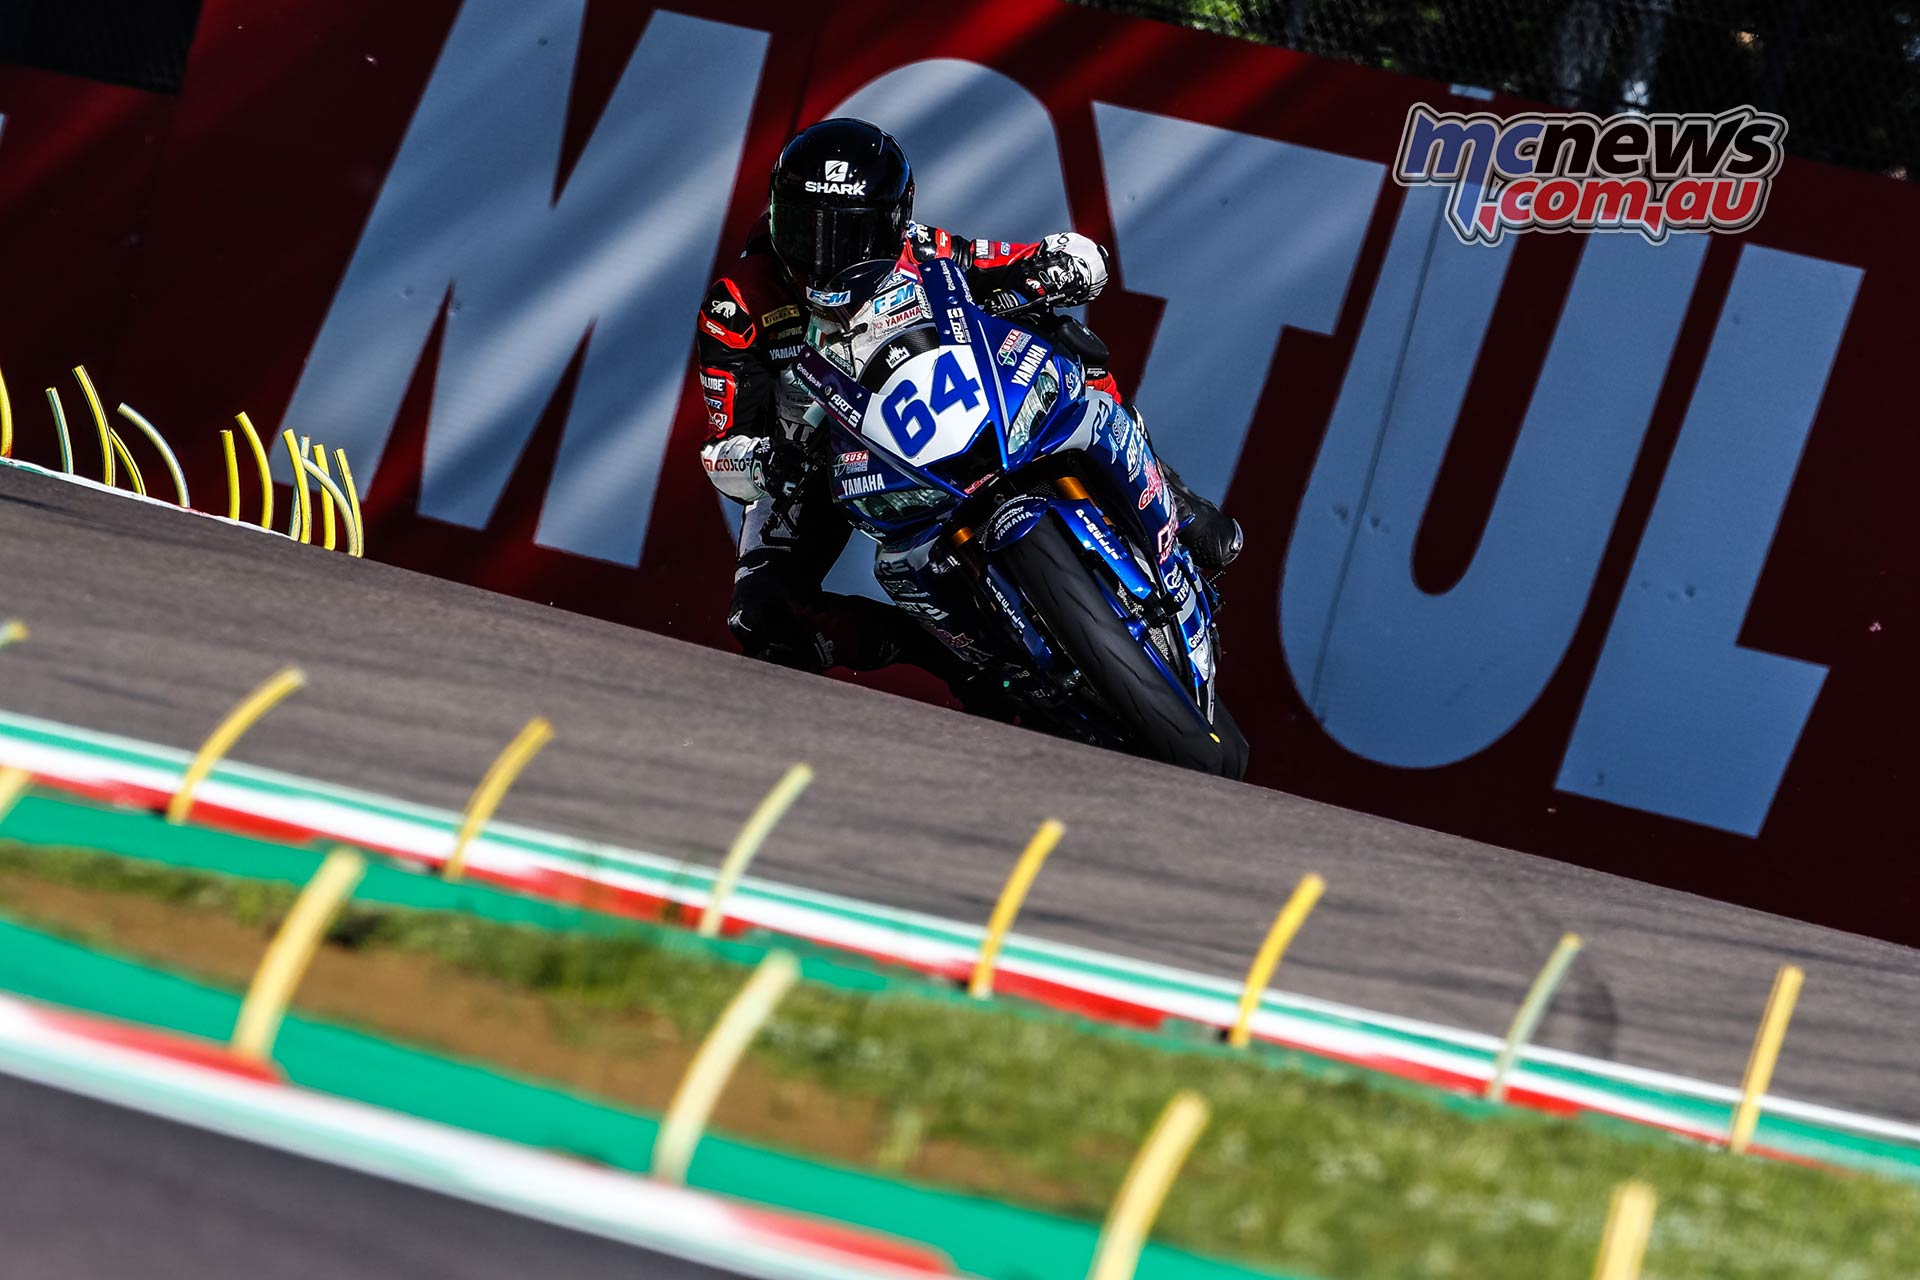 WSBK Rnd Imola Friday WorldSSP Friday Action De Cancellis